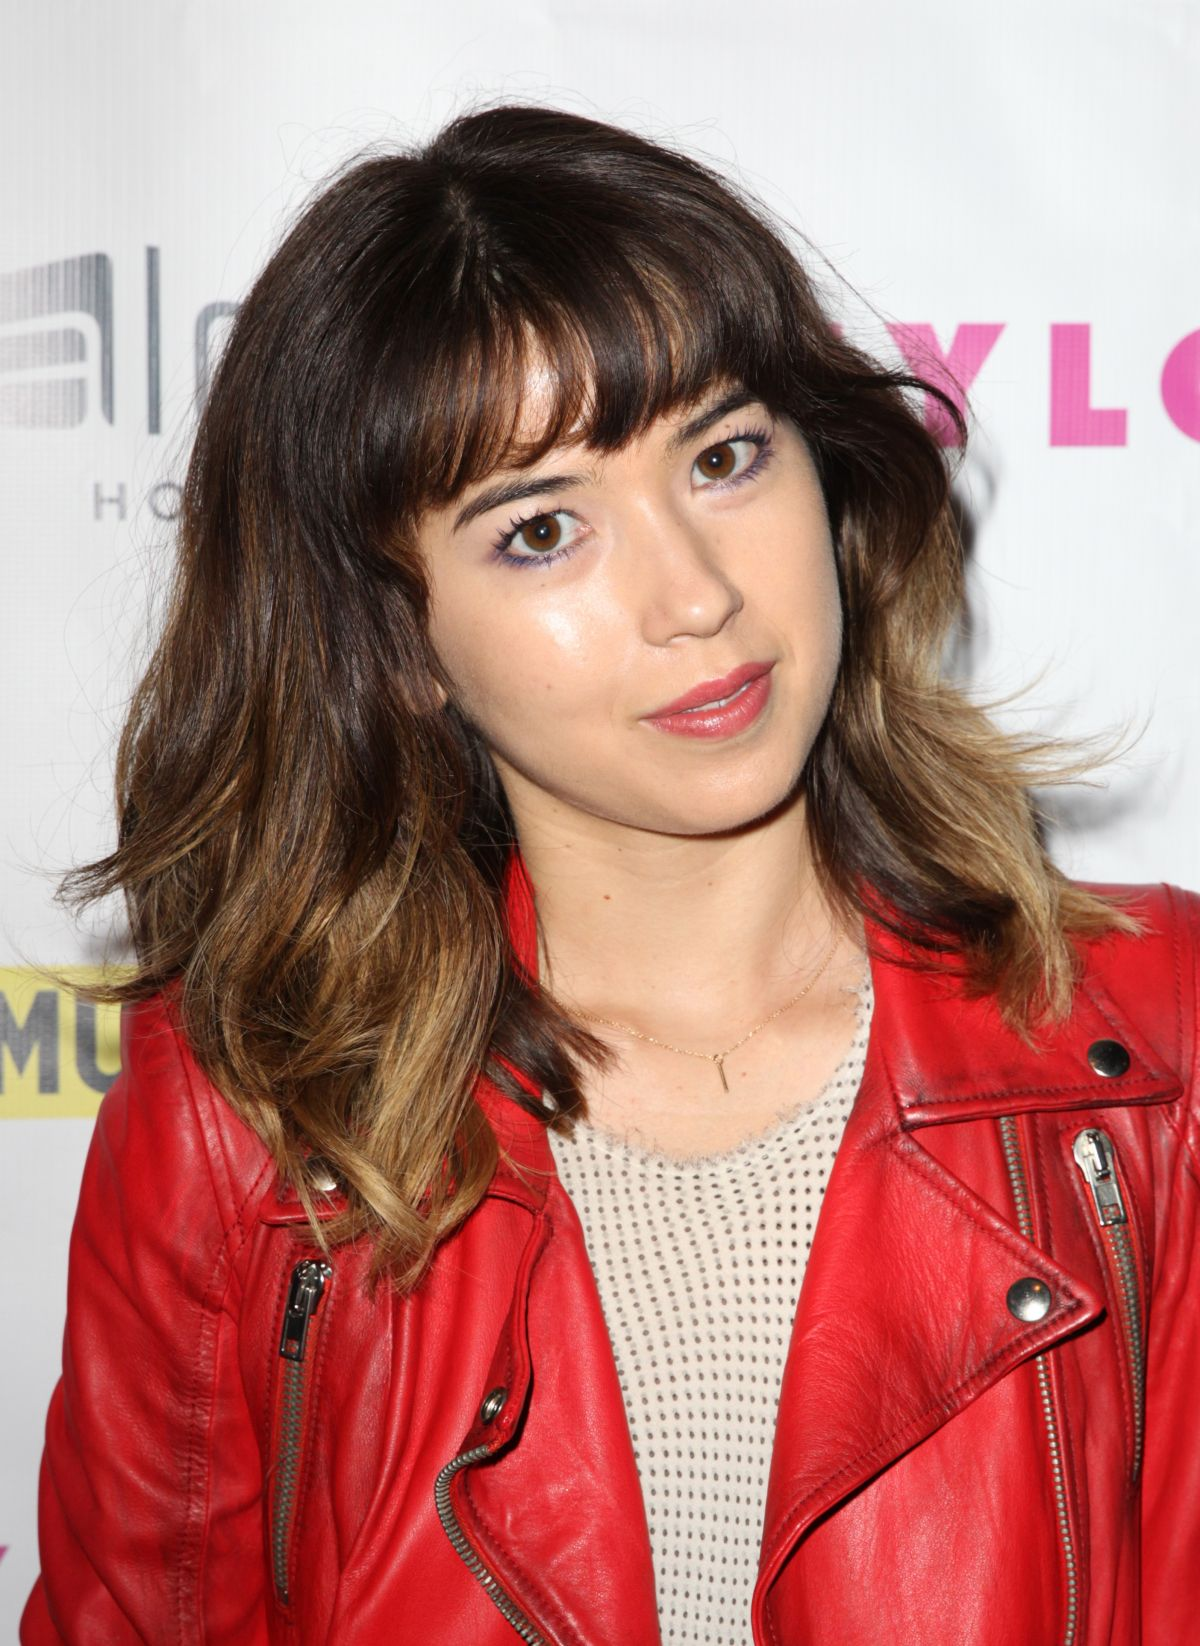 nichole-bloom-at-nylon-magazine-music-issue-party-in-los-angeles_2.jpg